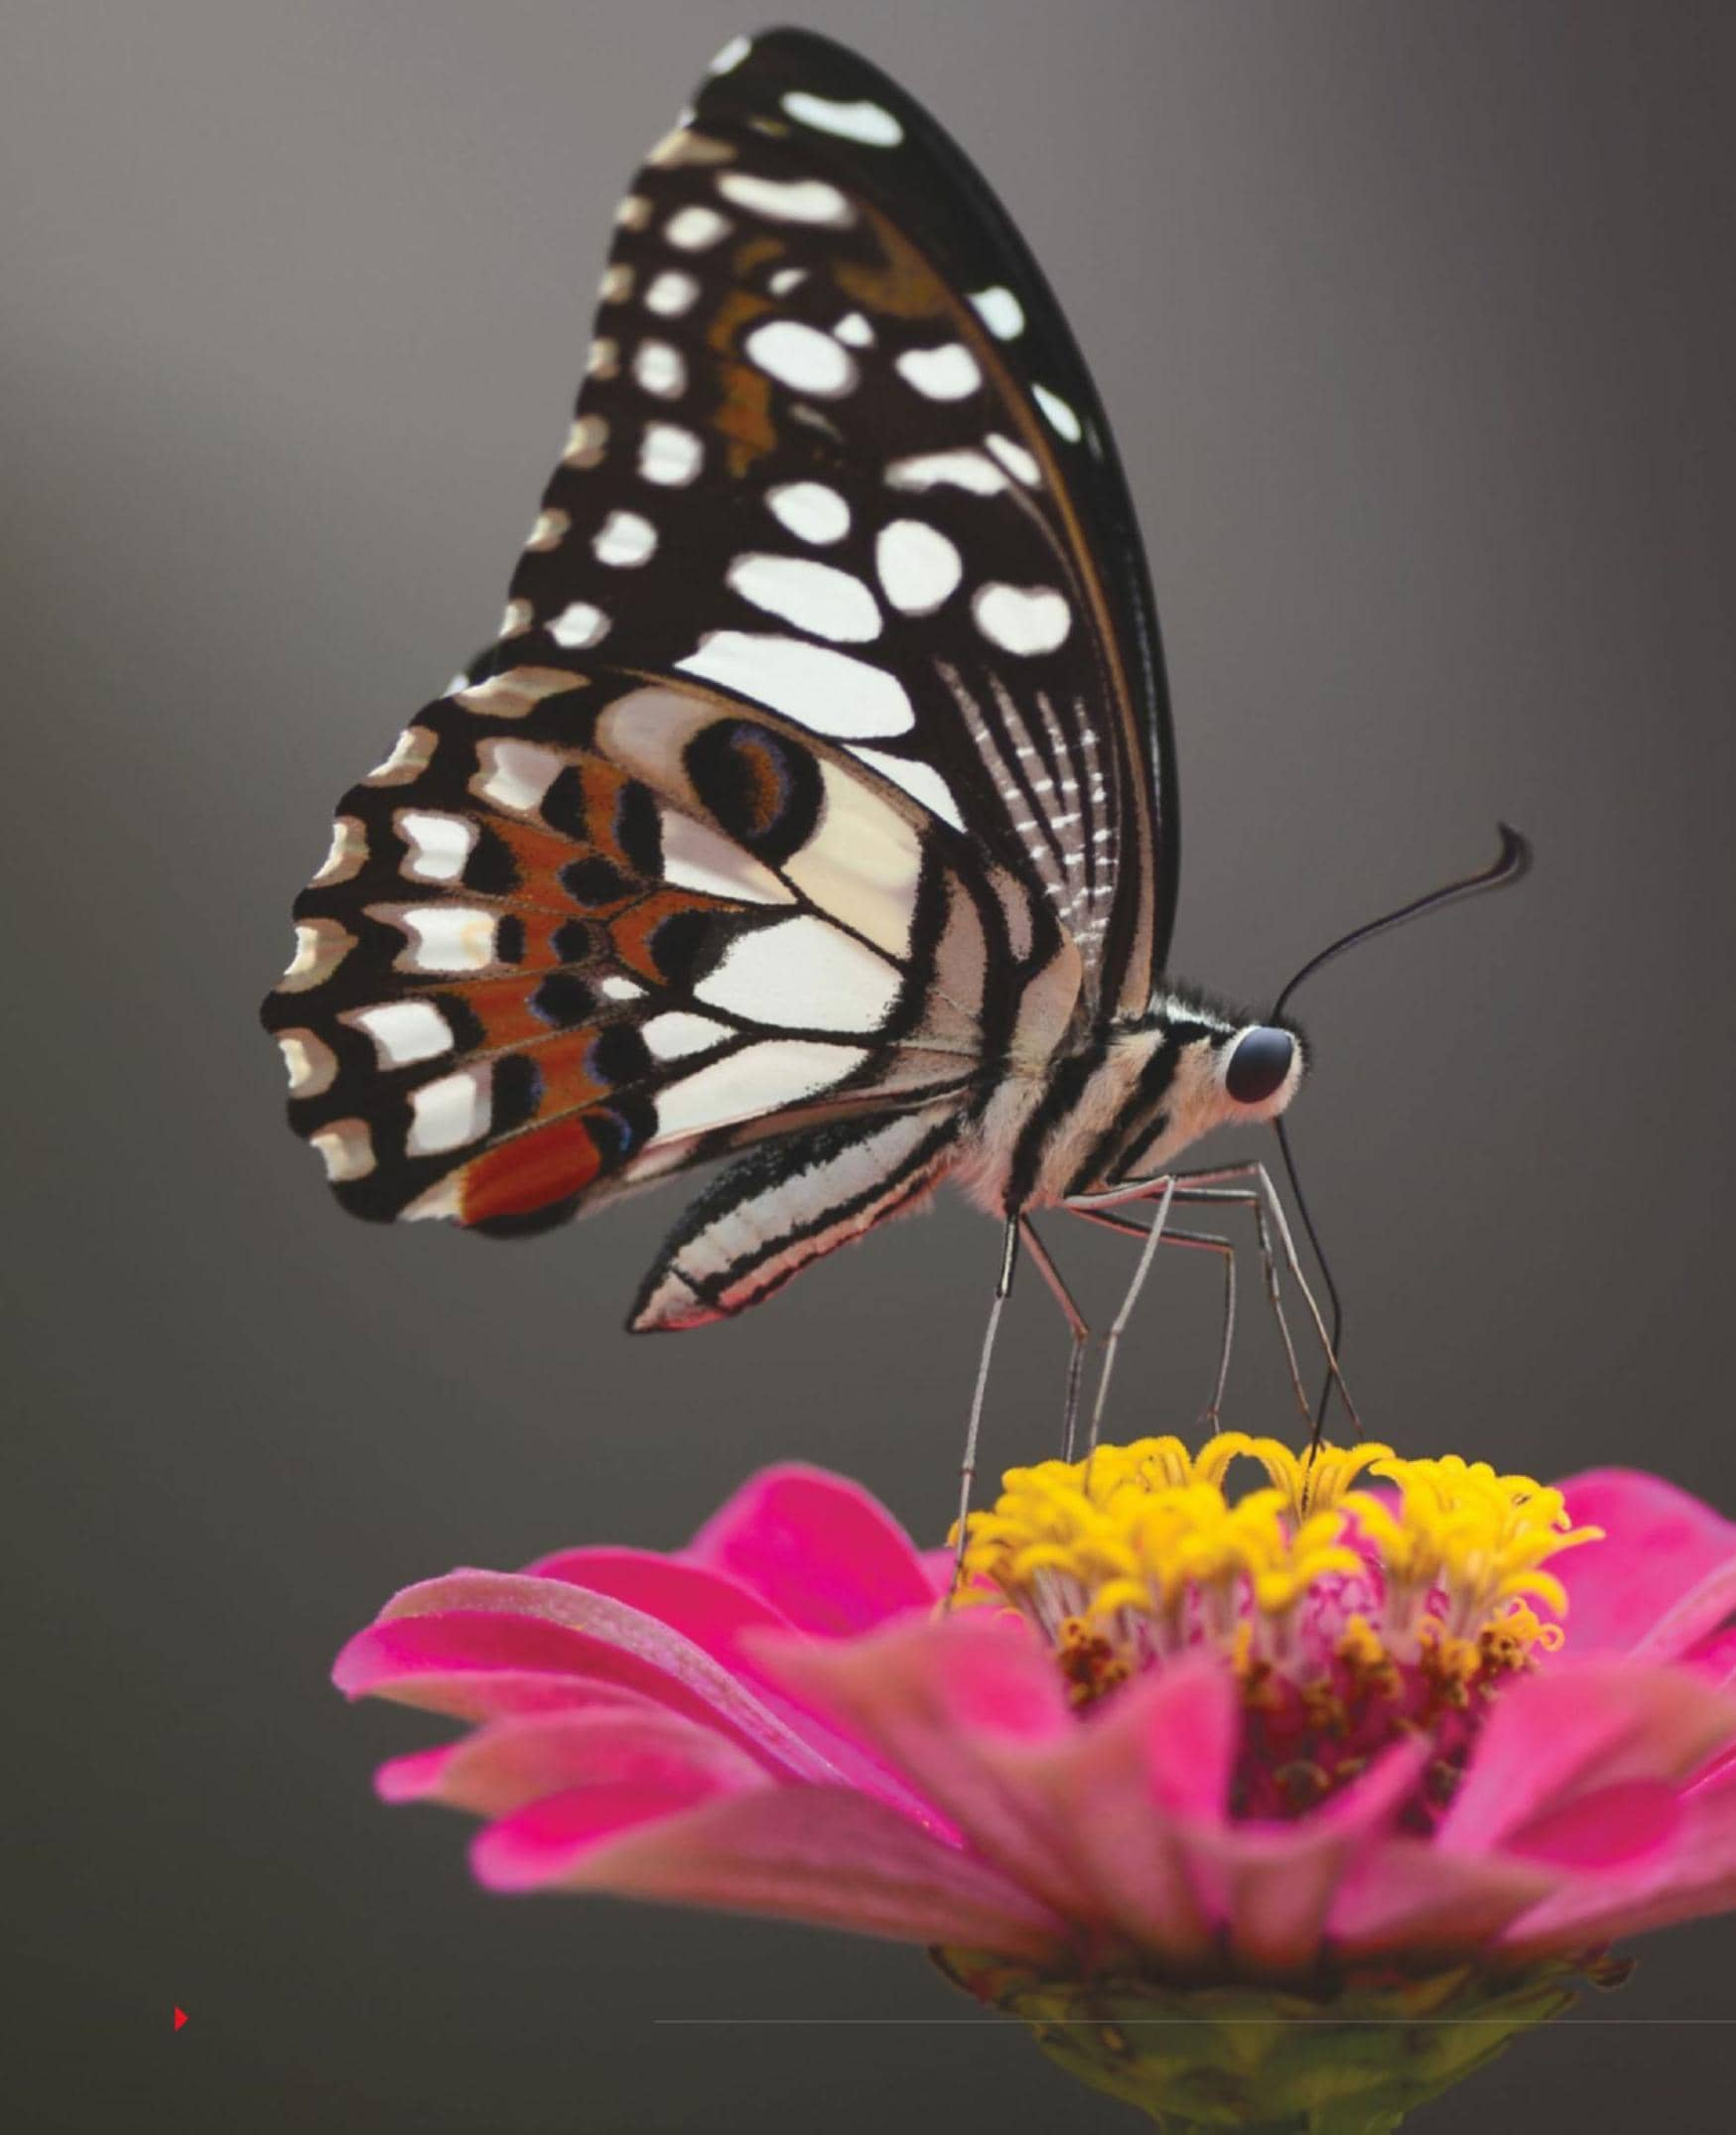 The Fascinating World of Butterflies!